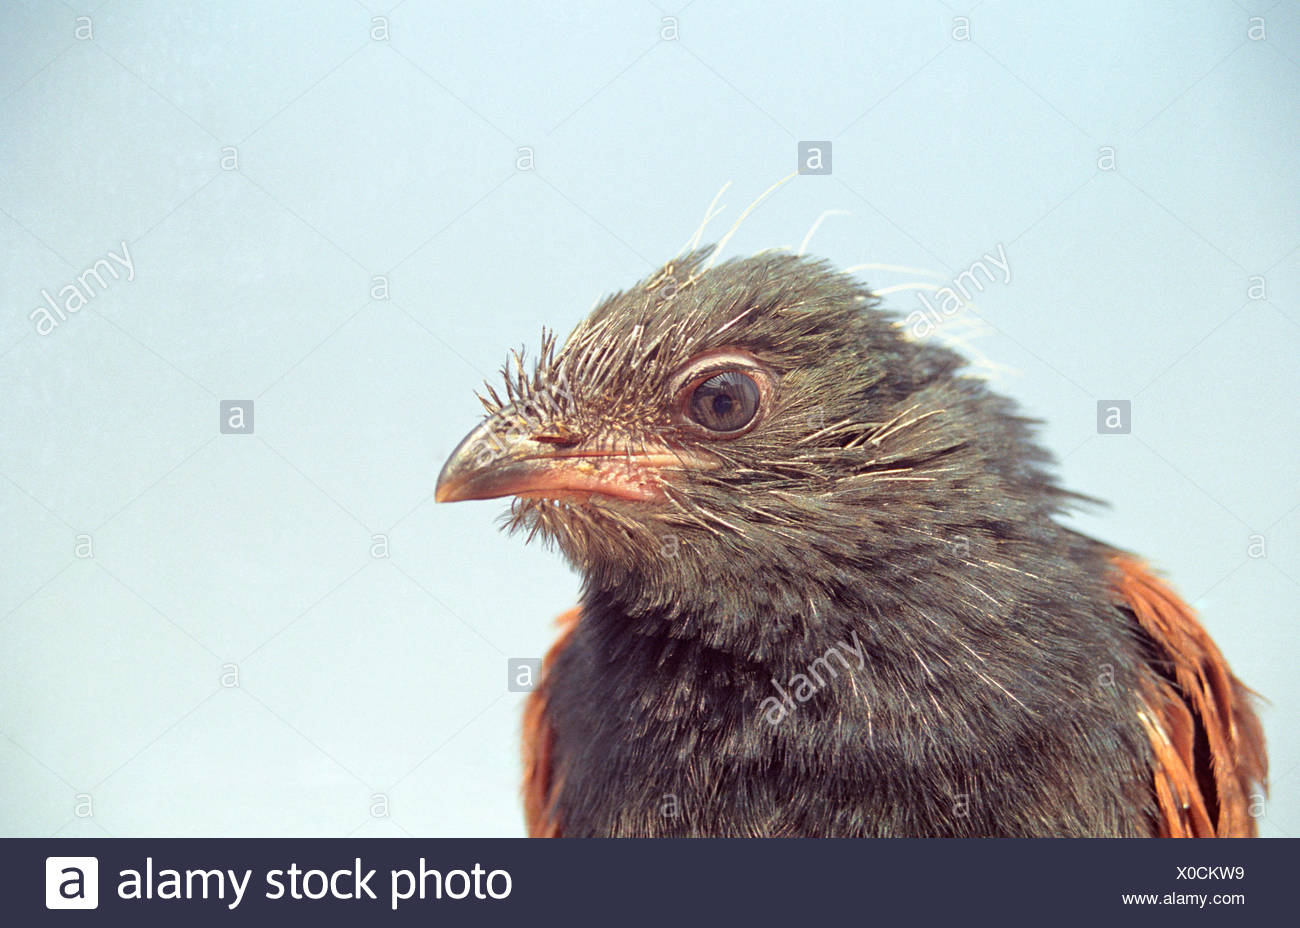 The greater coucal or crow pheasant , Centropus sinensis, Captive, India - Stock Image